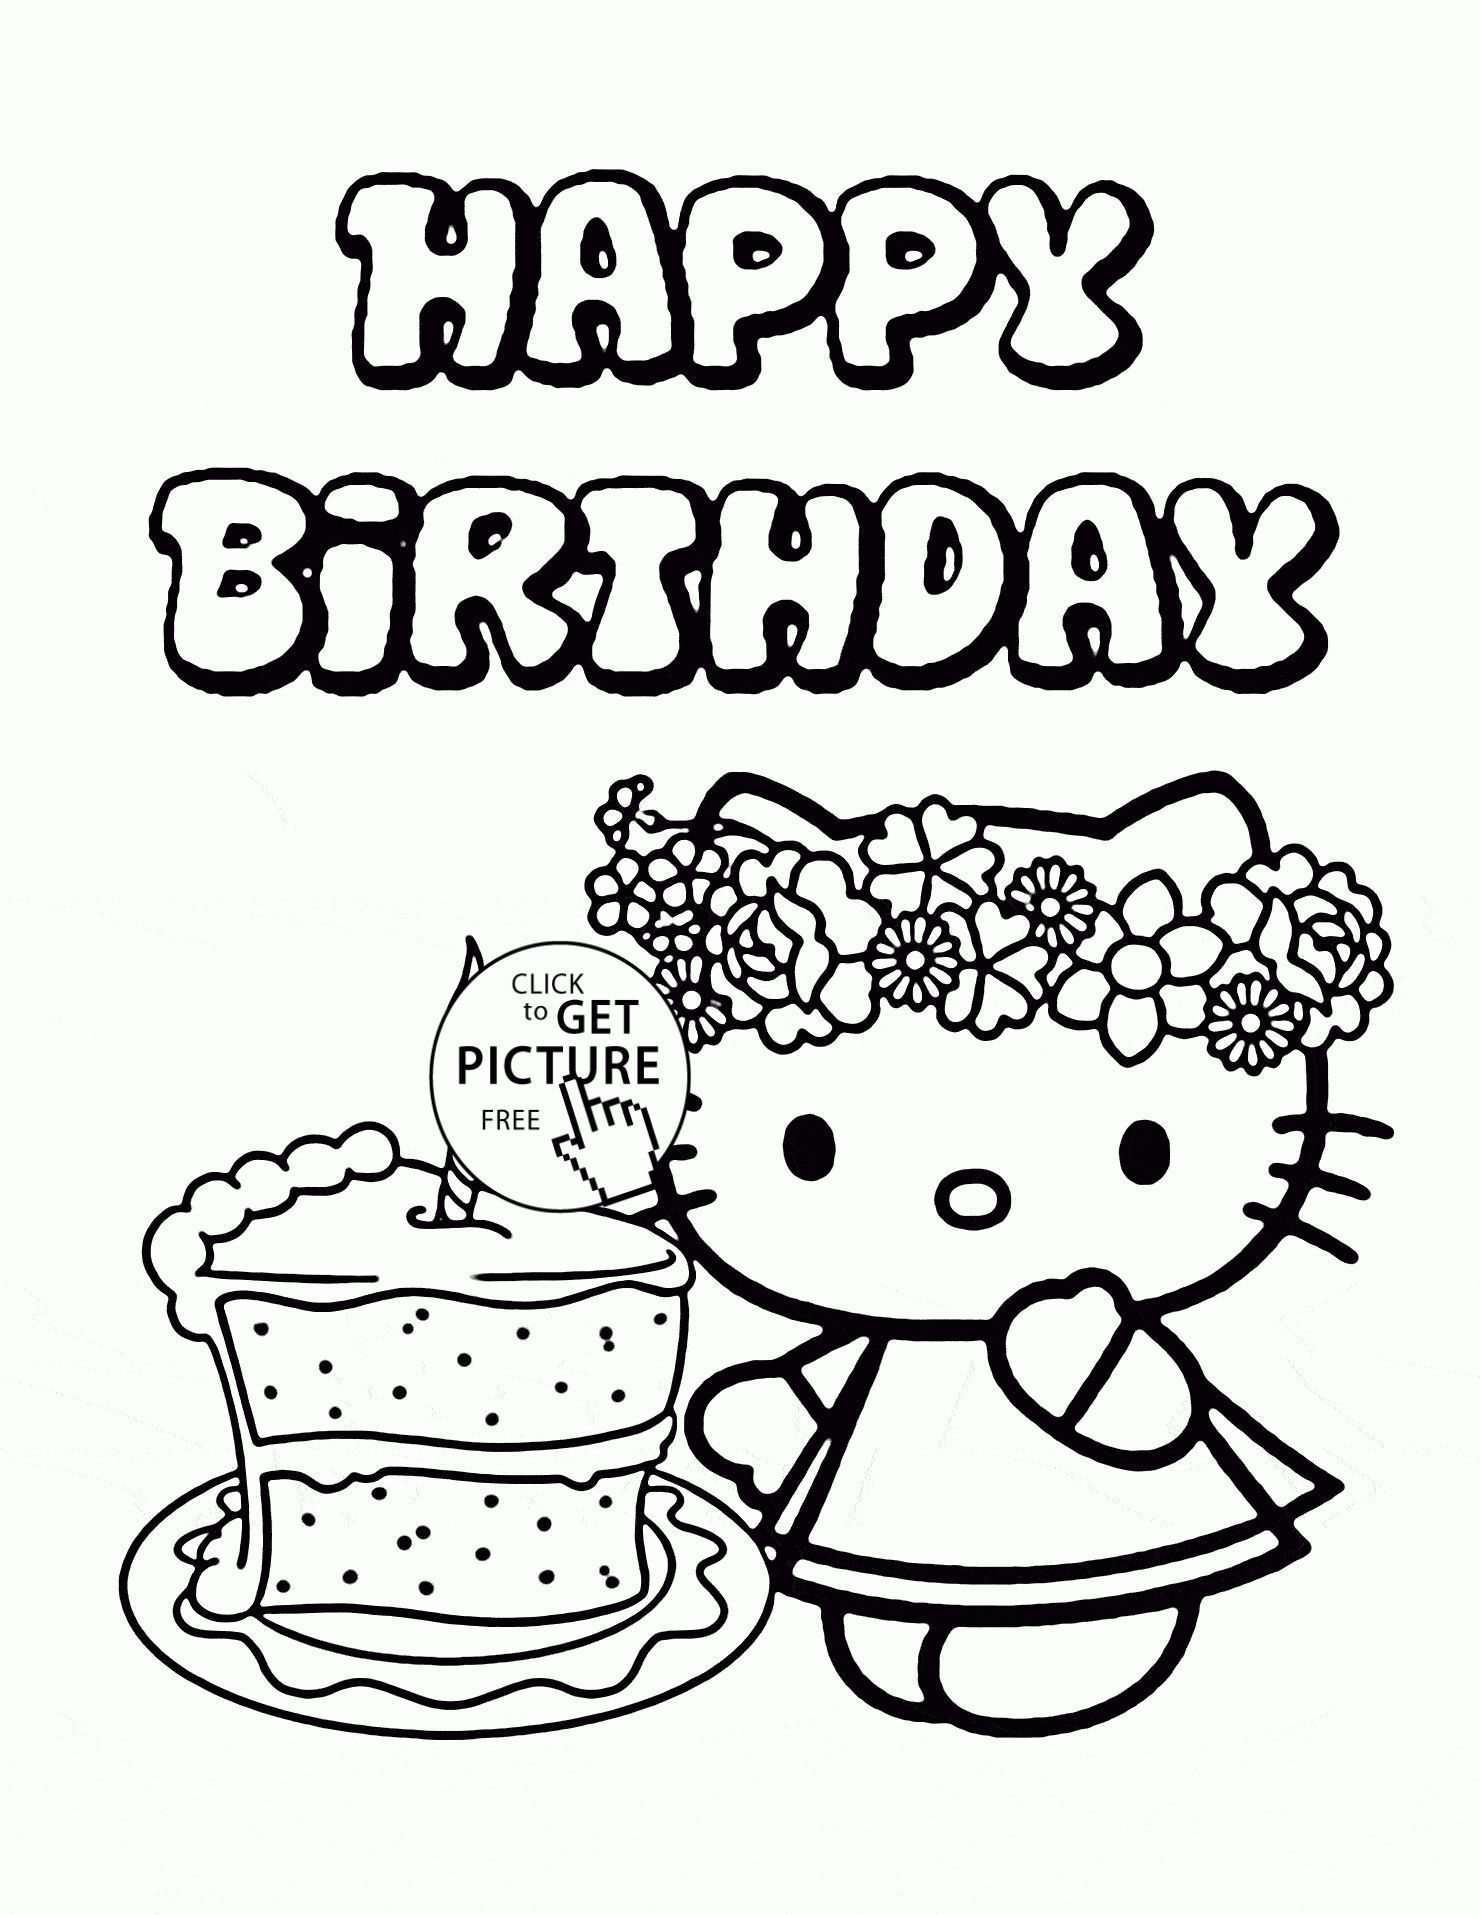 Hello Kitty Cake Coloring Pages - Coloring pages allow kids to